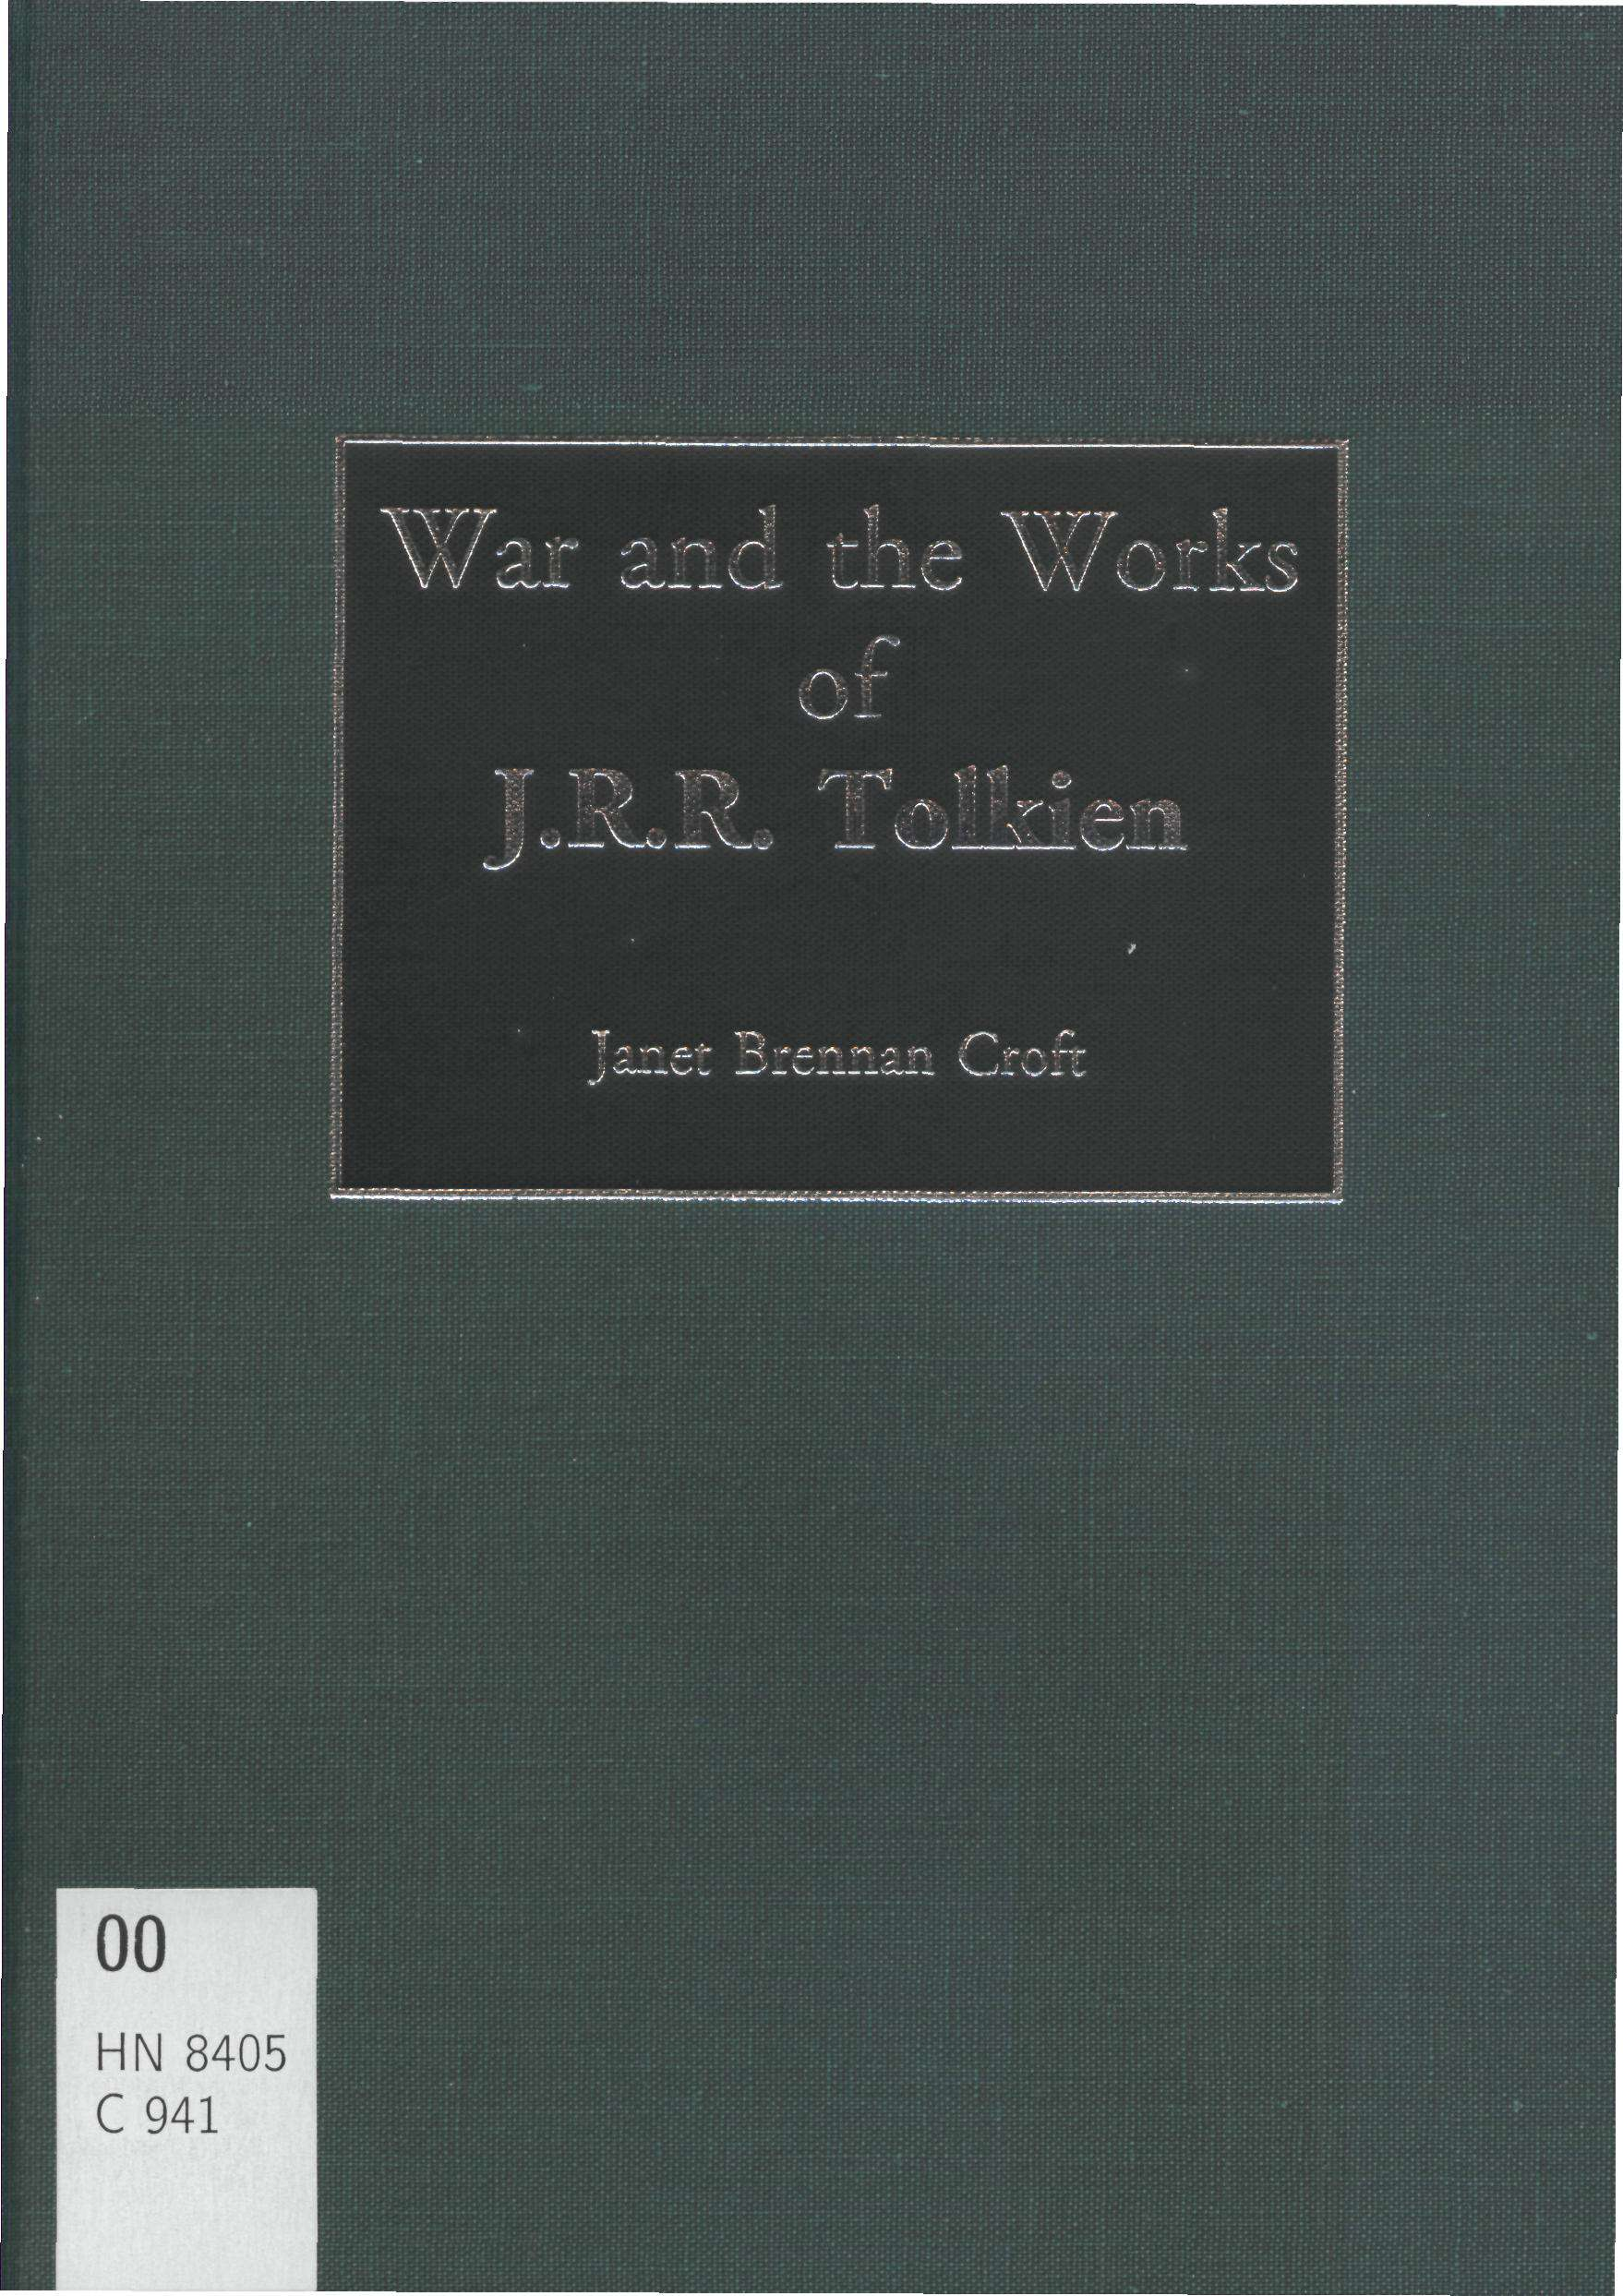 War and the Works of J.R.R.Tolkien